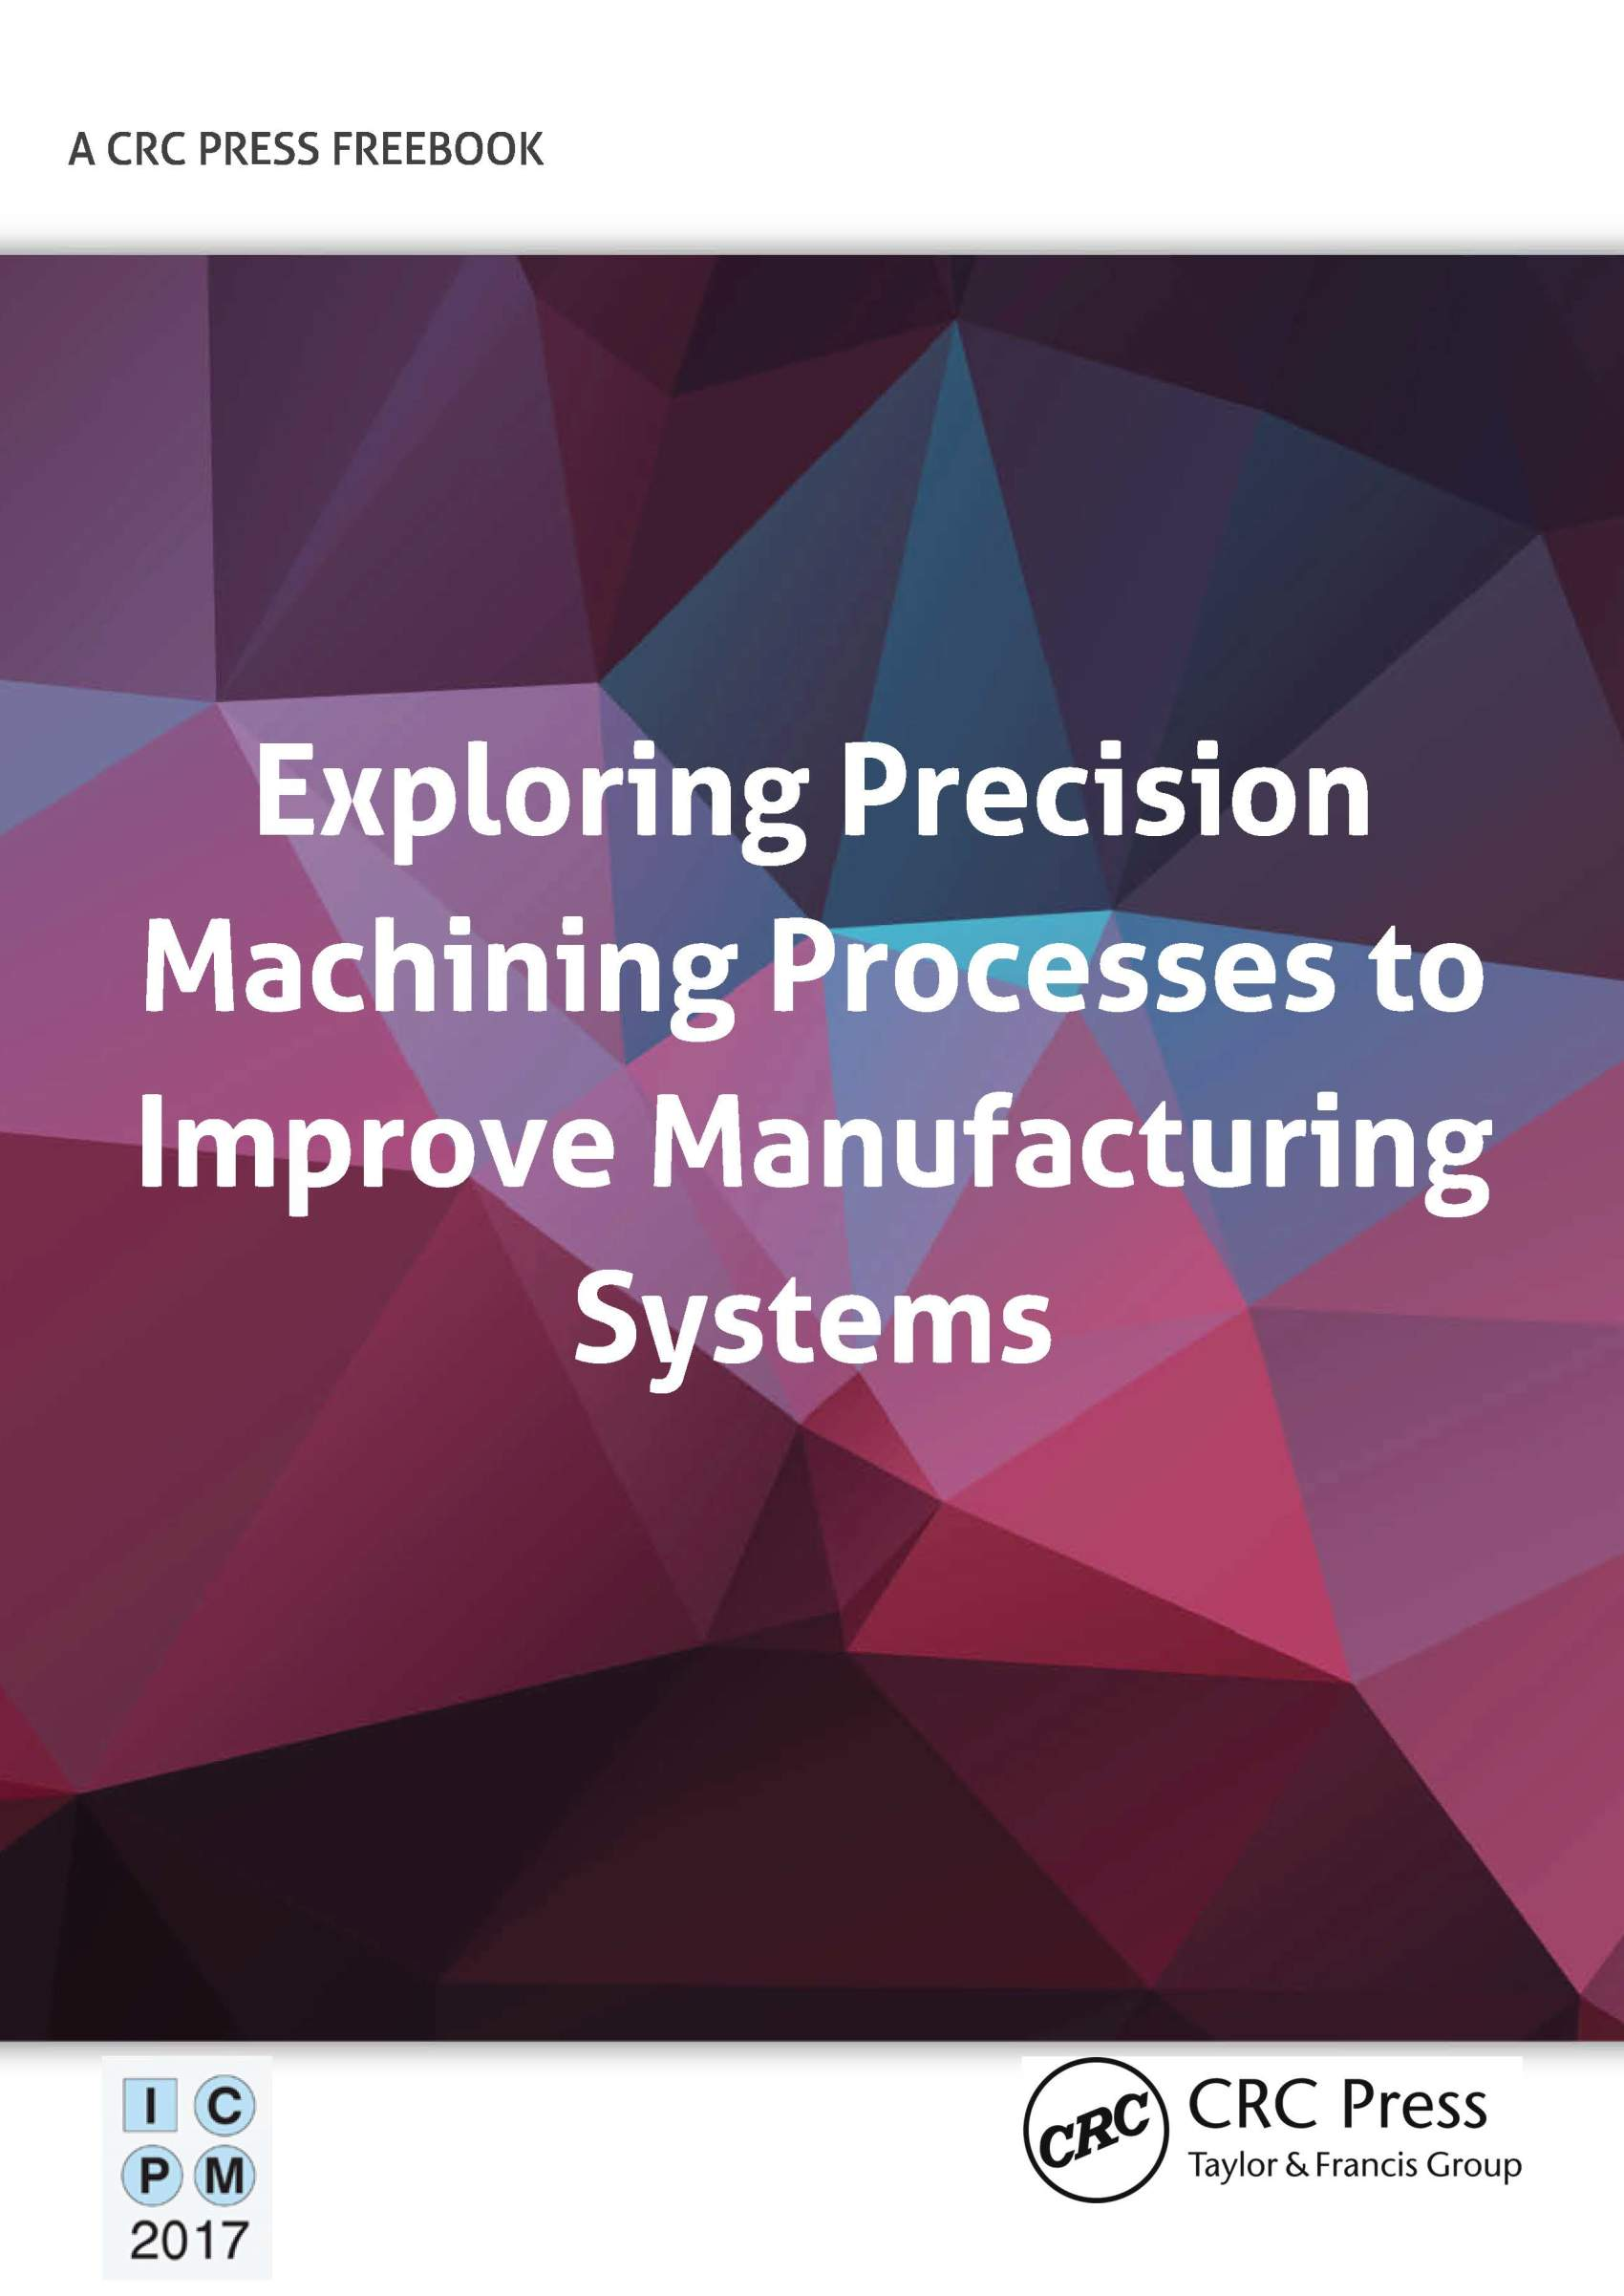 Exploring Precision Machining Processes to Improve Manufacturing Systems